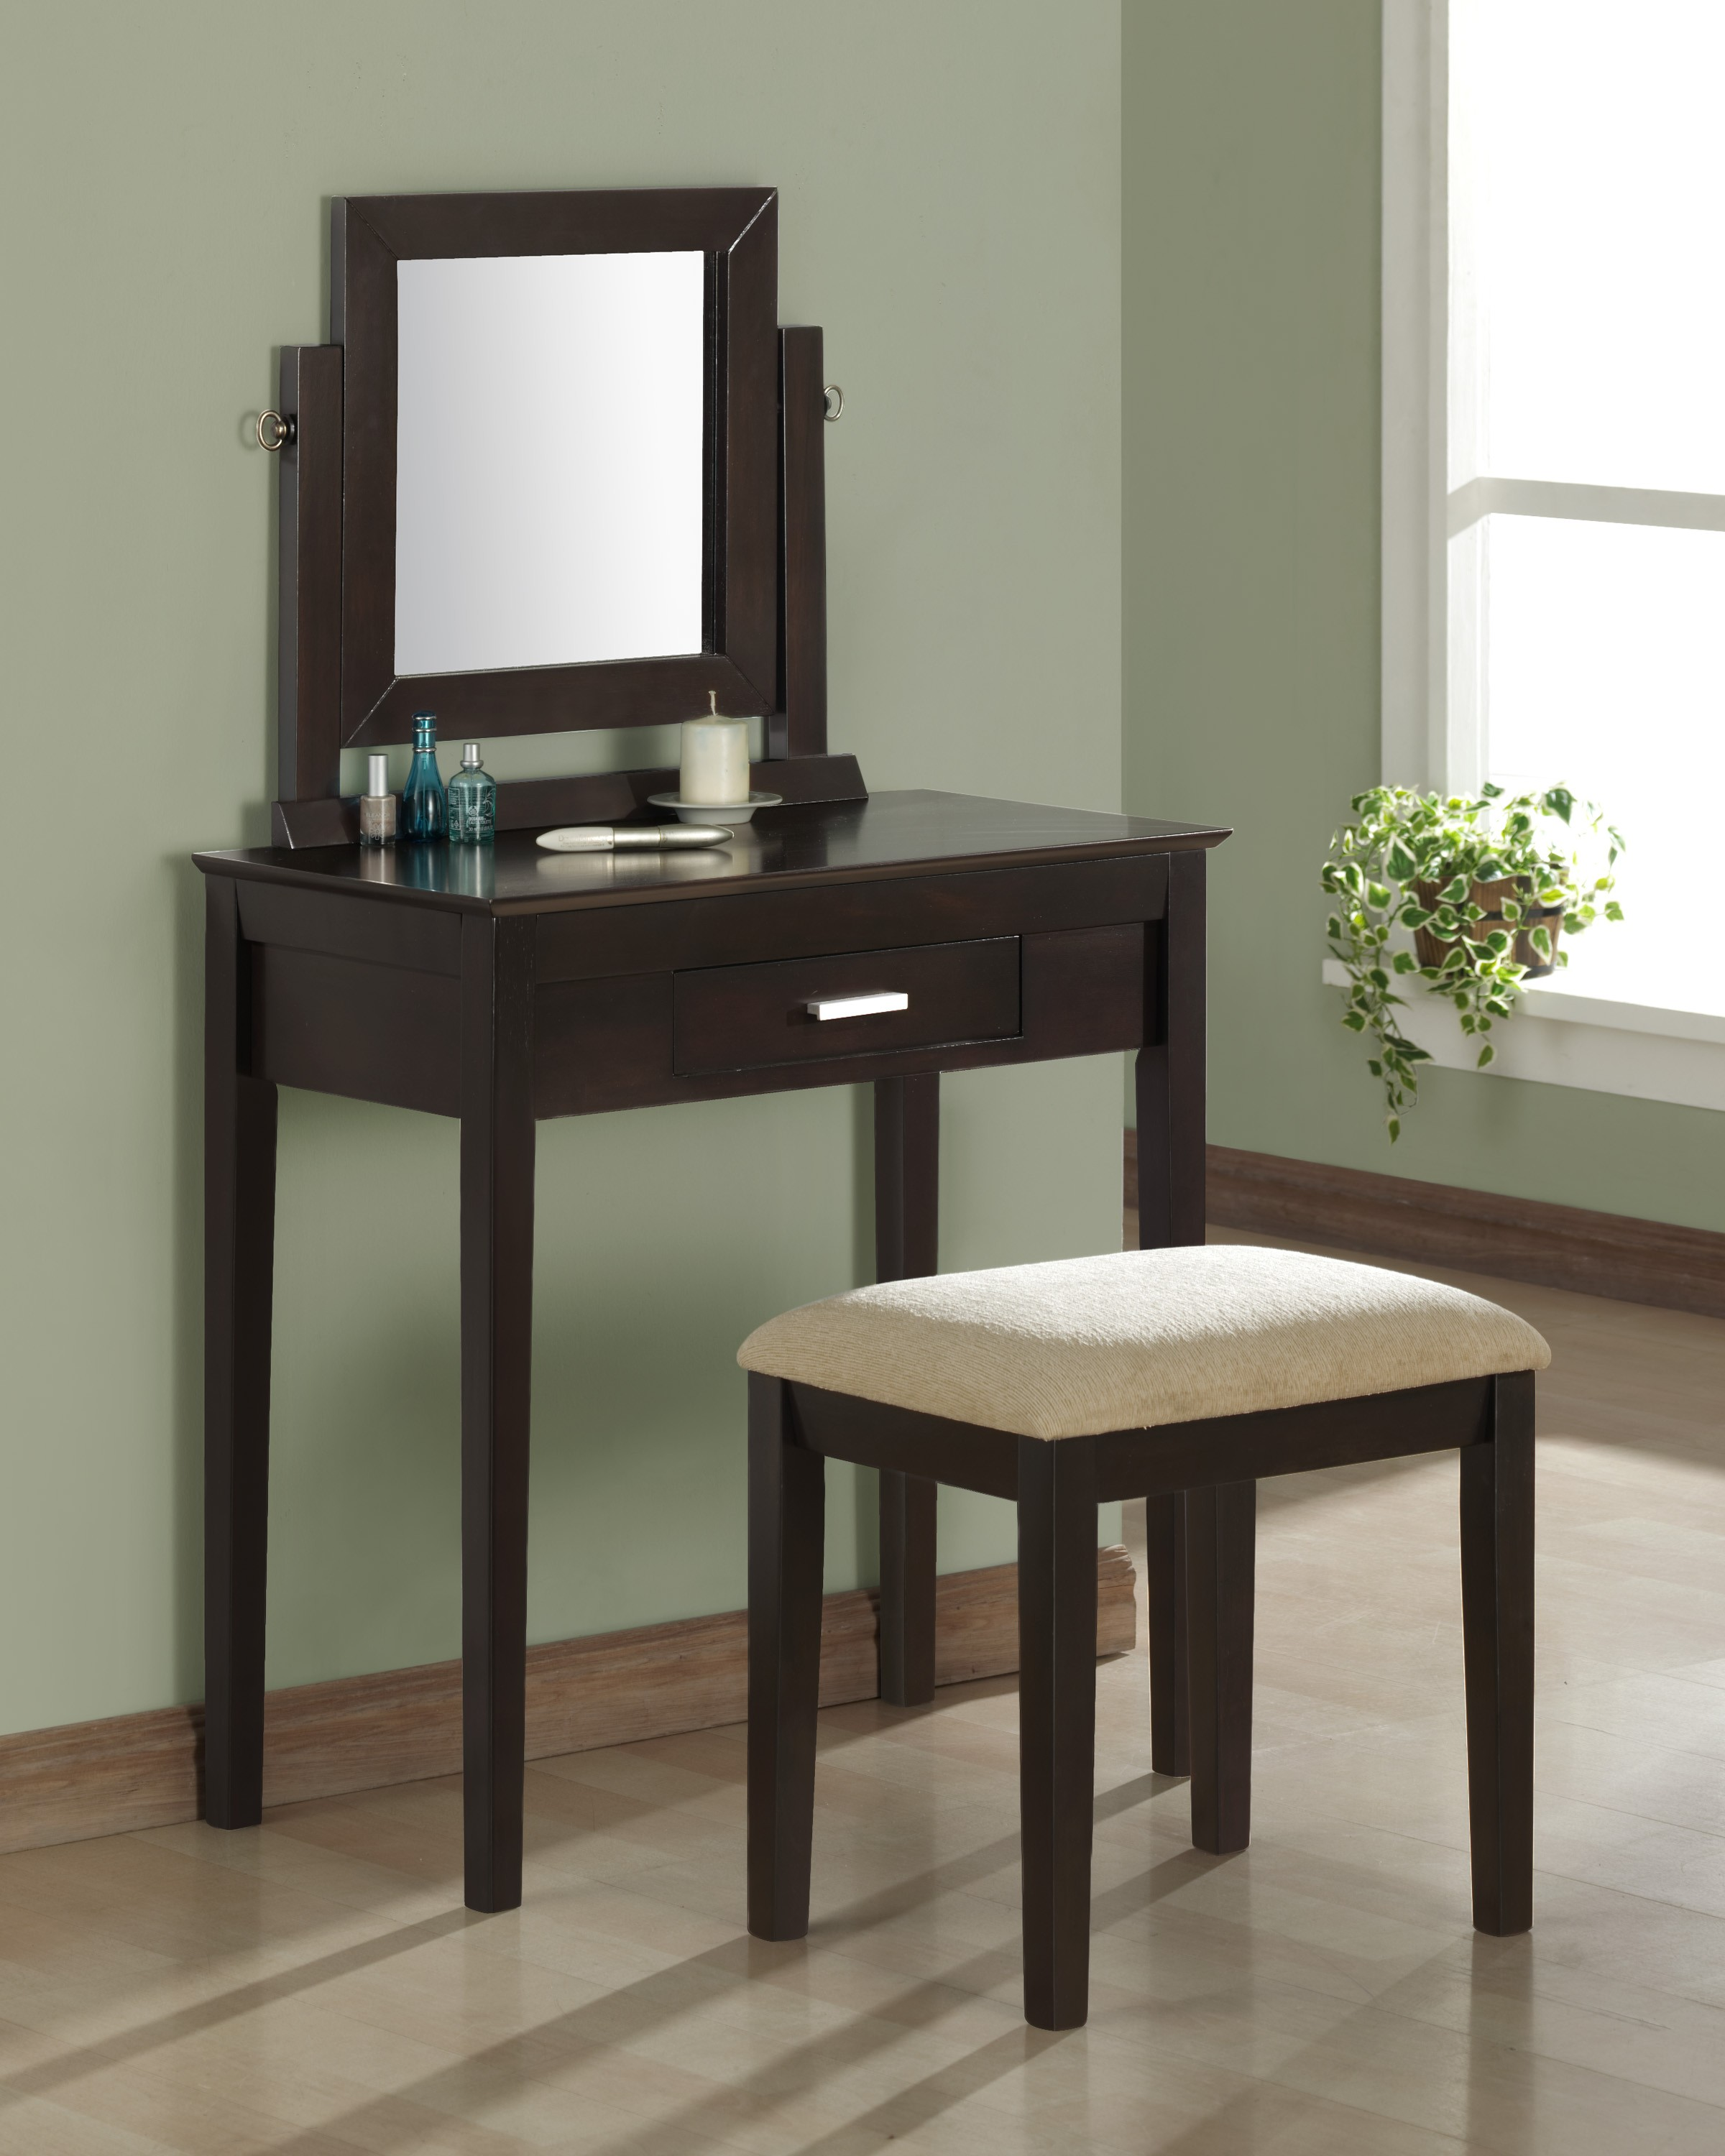 furniture-bedroom-matte-black-stained-oak-wood-with-square-swing-mirror-and-drawer-also-tapered-legs-bedroom-makeup-vanity-ideas